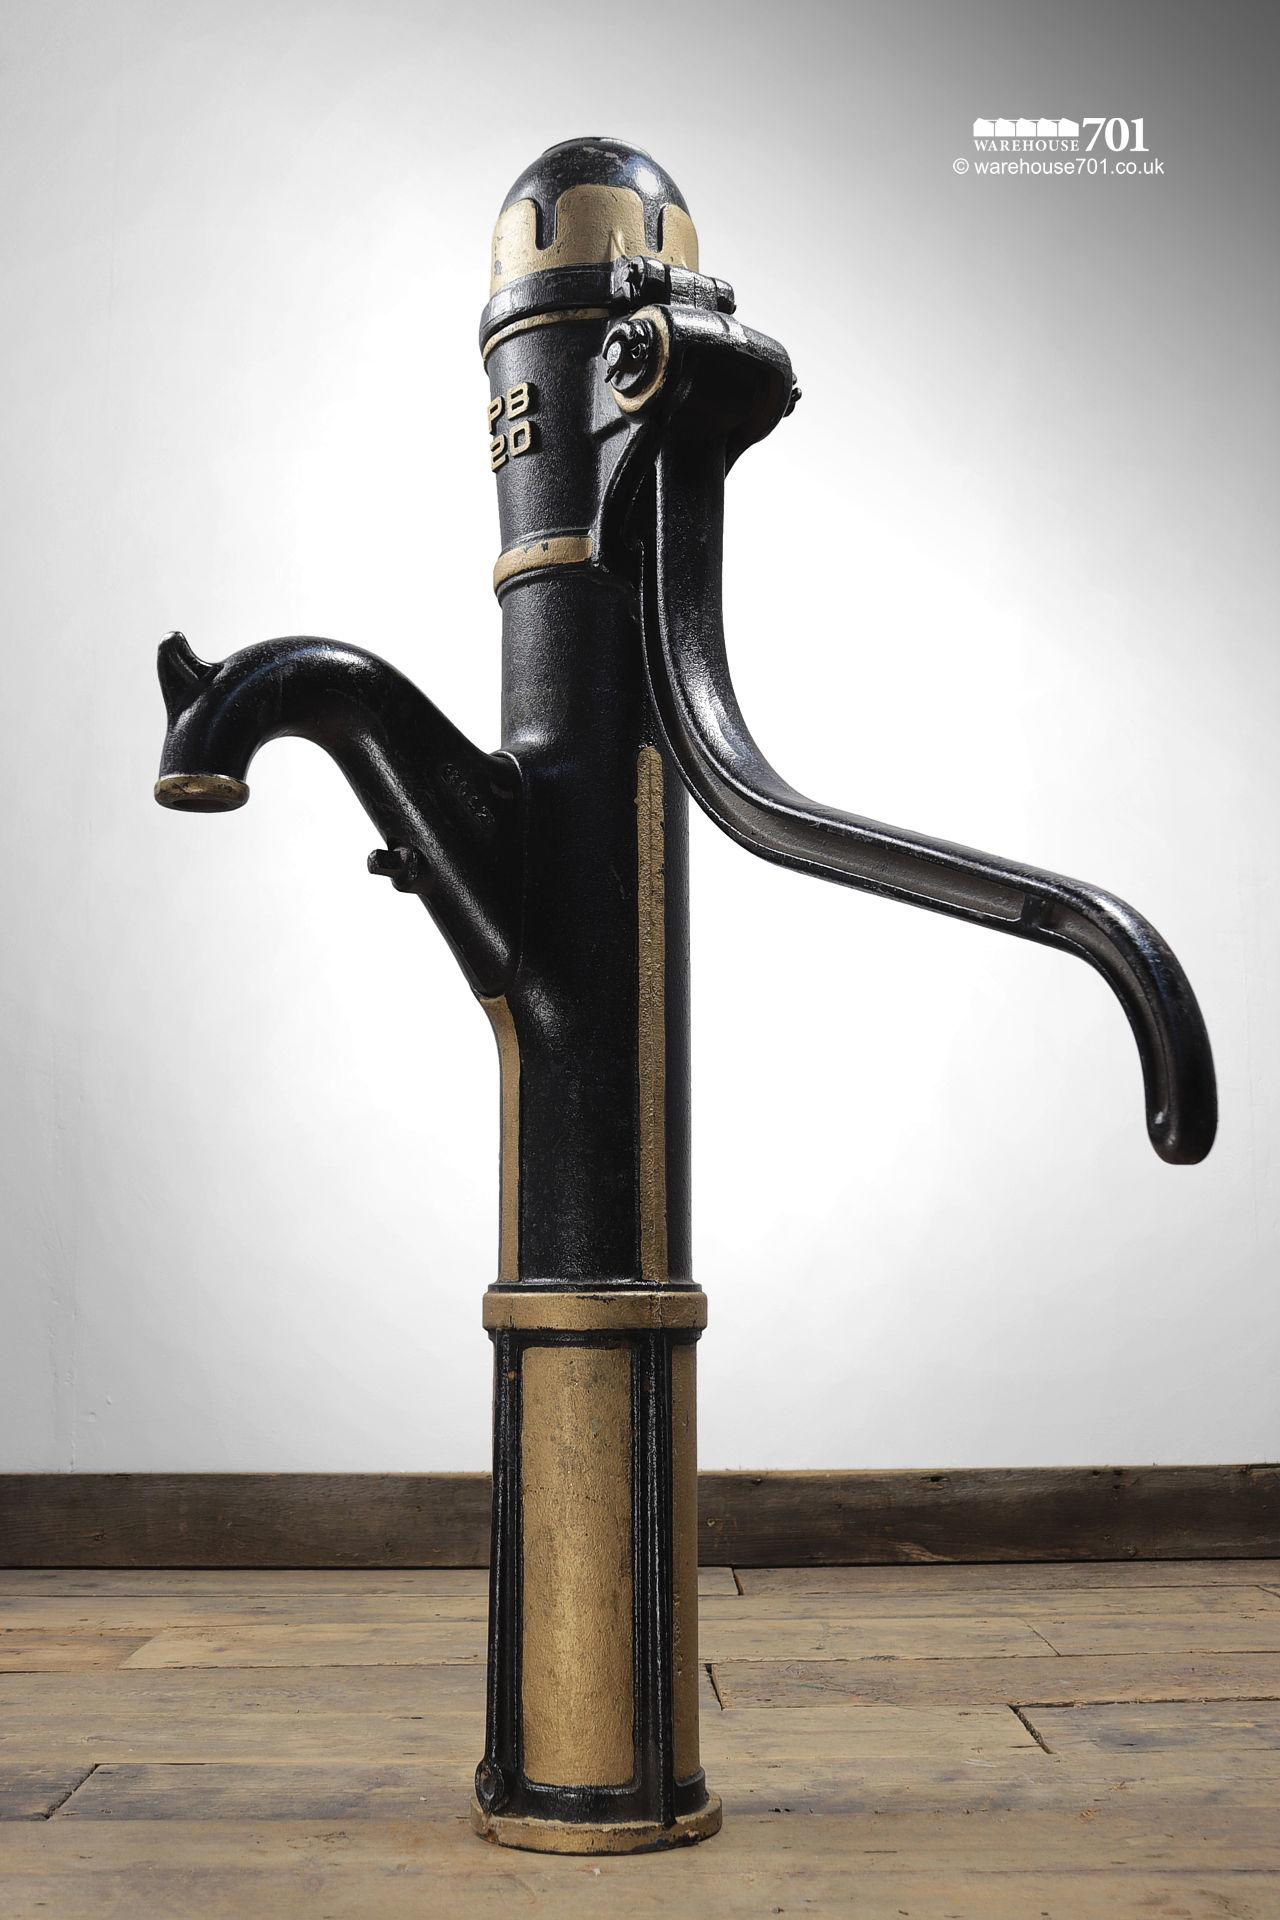 Salvaged Gold and Black Cast Iron Water Pump #3